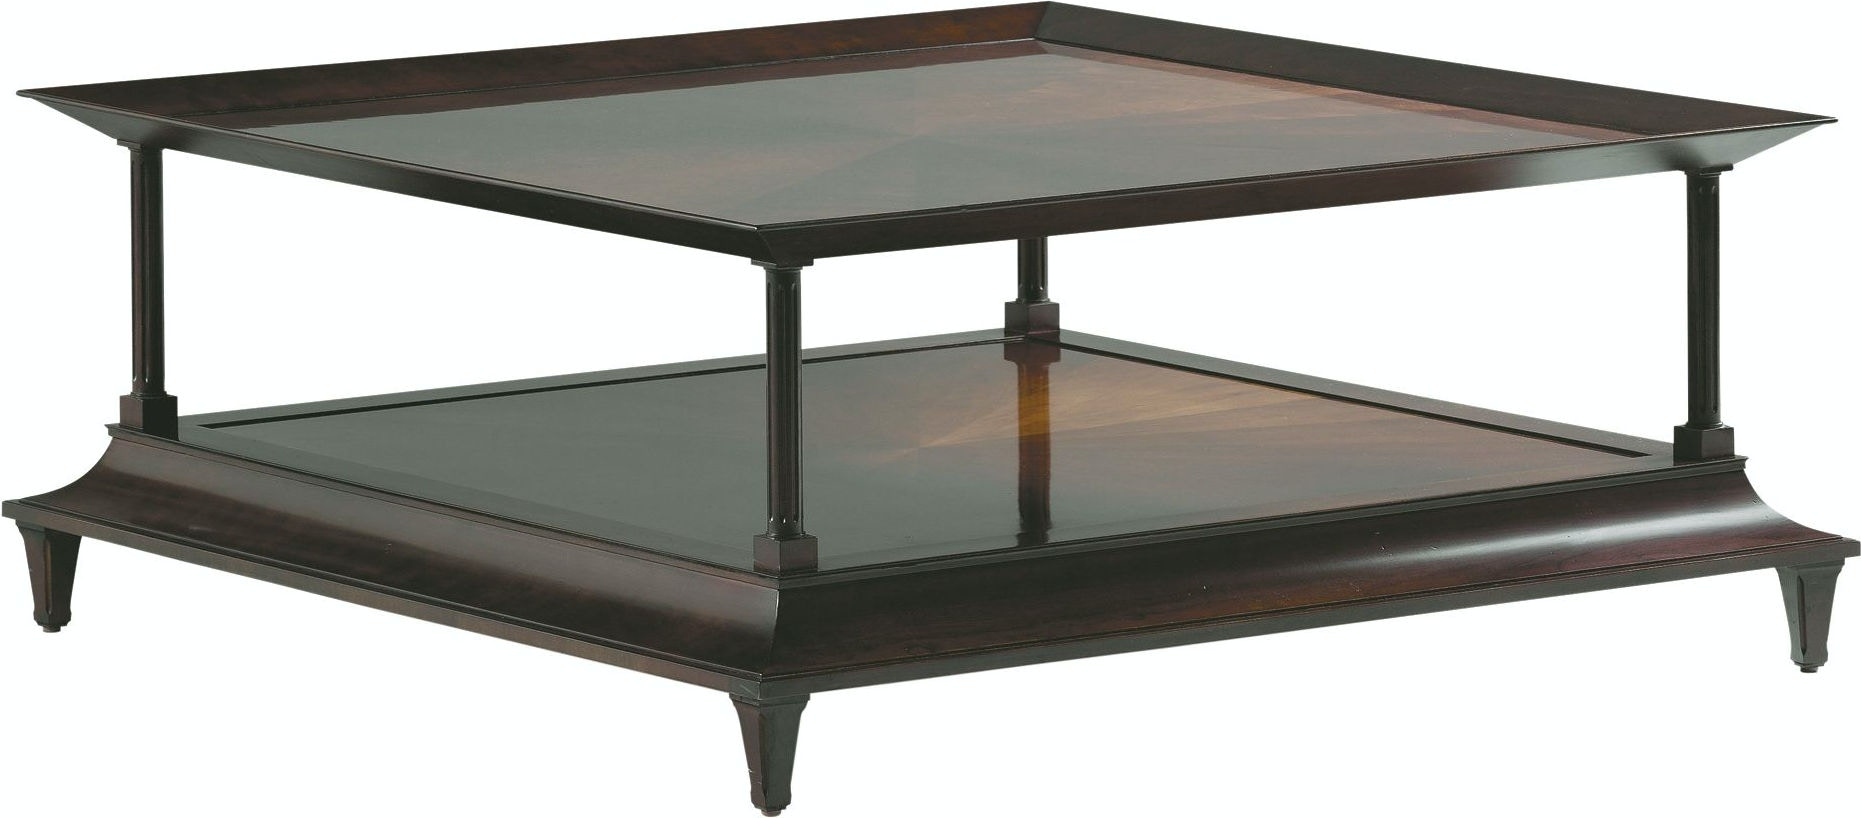 Baker Furniture 3752 Living Room Jacques Garcia Coffee Table